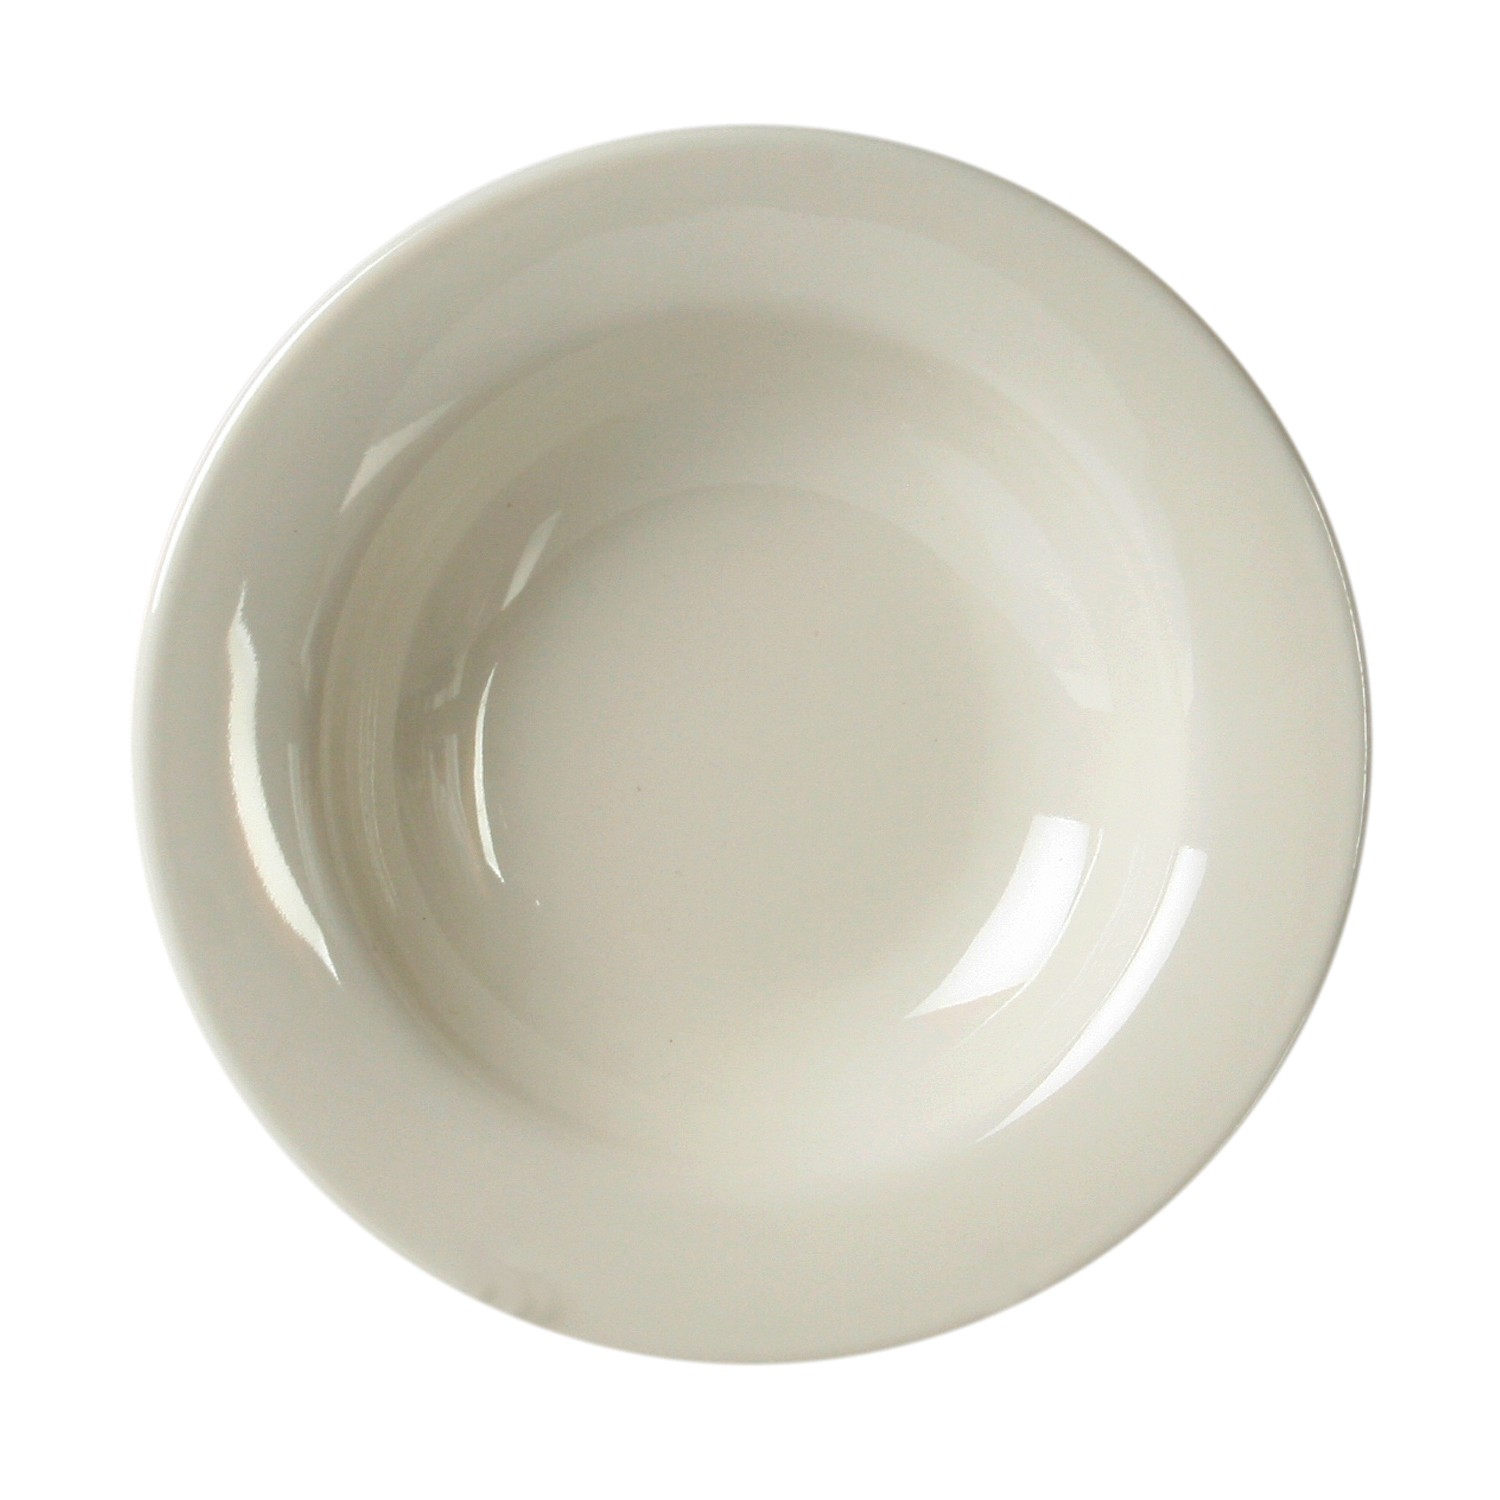 Thunder Group CR5077V Ivory Melamine Wide Rim Salad Bowl 8 oz. - 1 doz